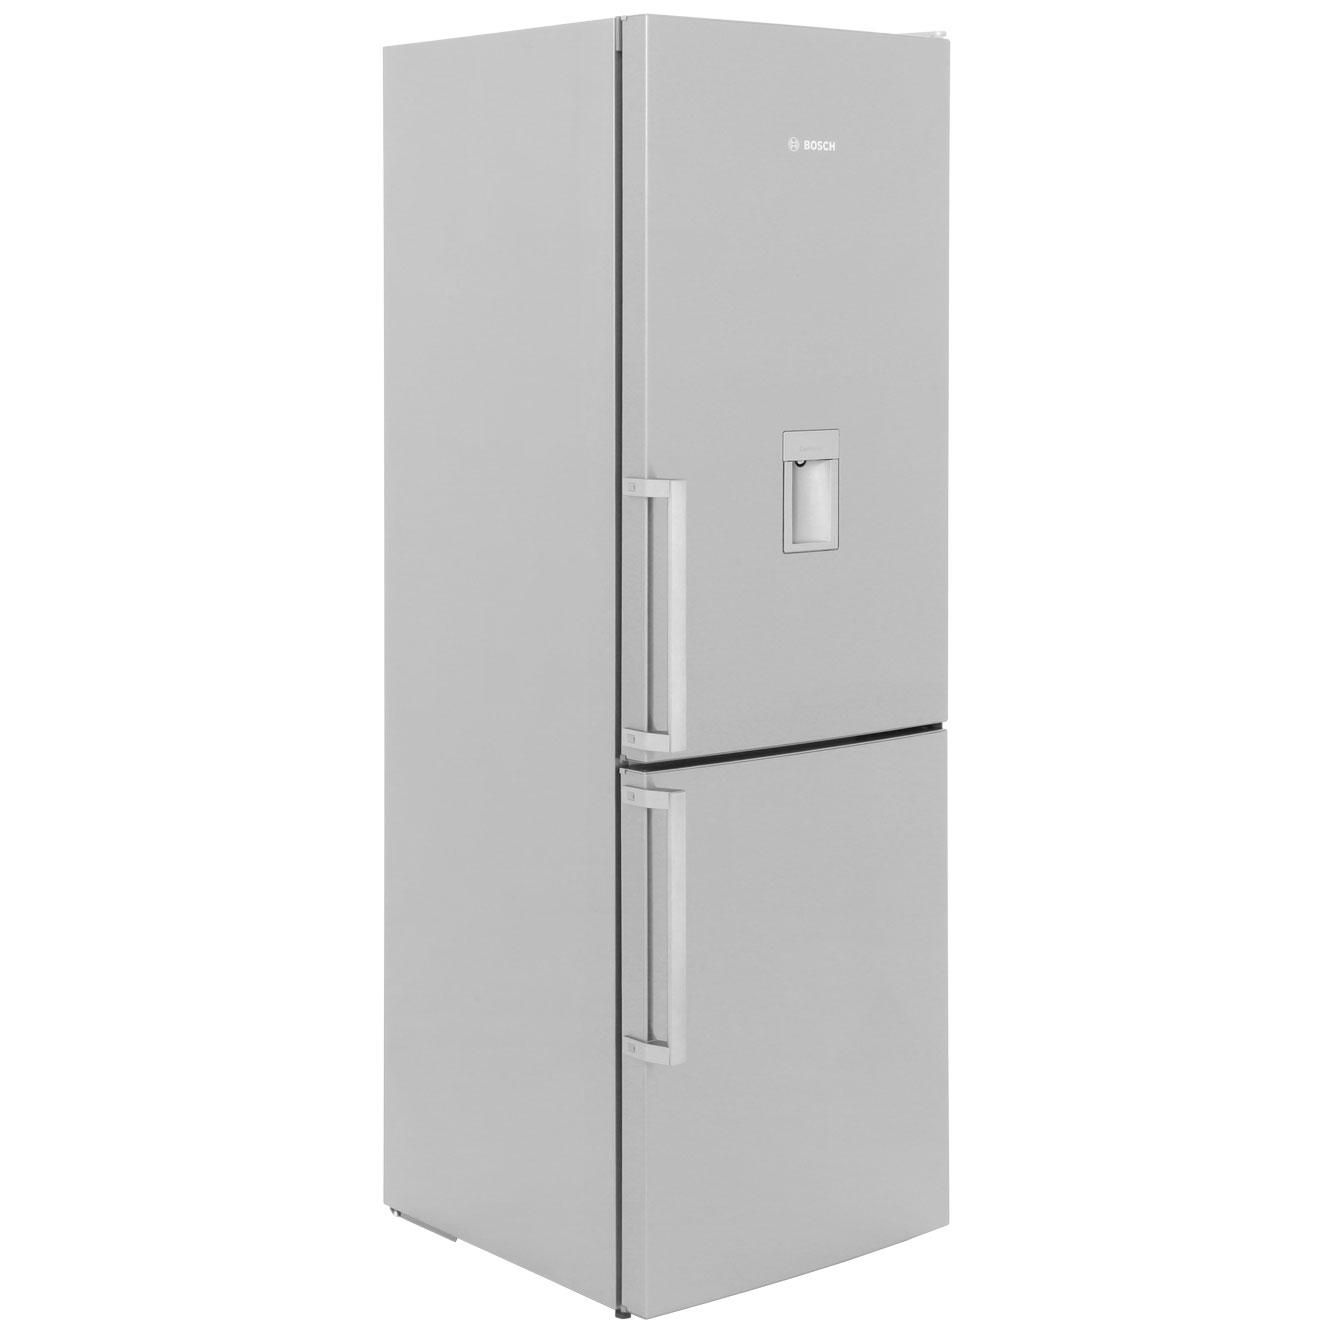 Bosch Serie 8 KGD36VI30G Free Standing Fridge Freezer Frost Free in Stainless Steel Look